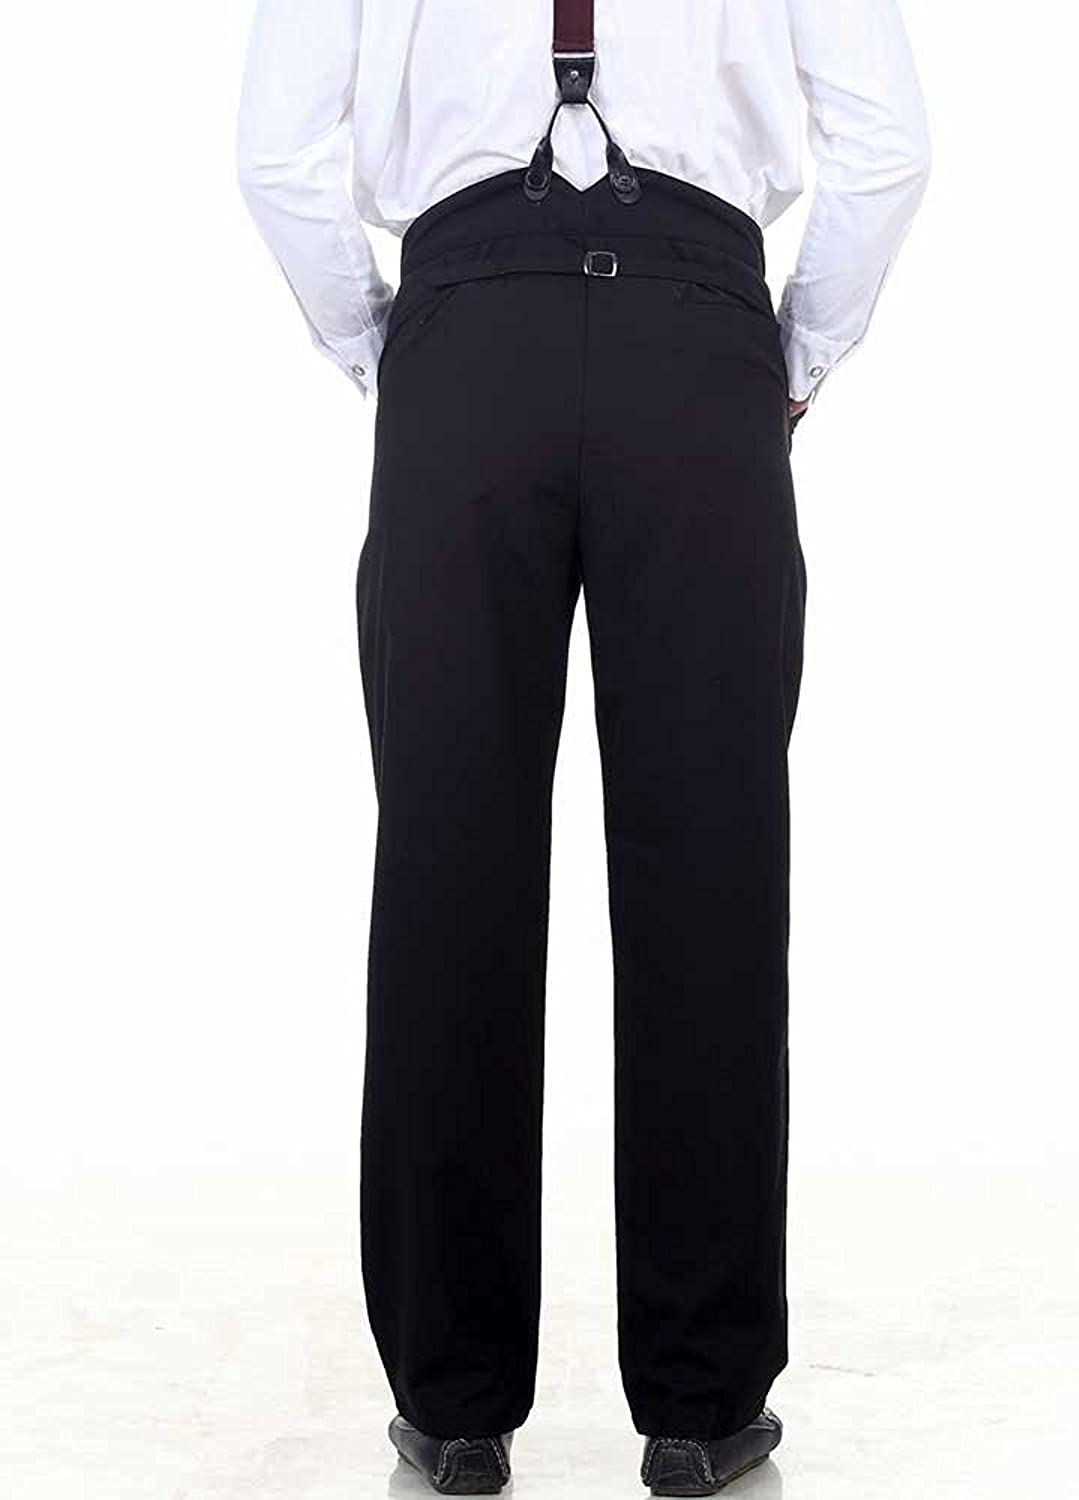 Men's Steampunk Costume Essentials ThePirateDressing Steampunk Cosplay Costume Classic Victorian Mens Pants Trousers C1331  AT vintagedancer.com